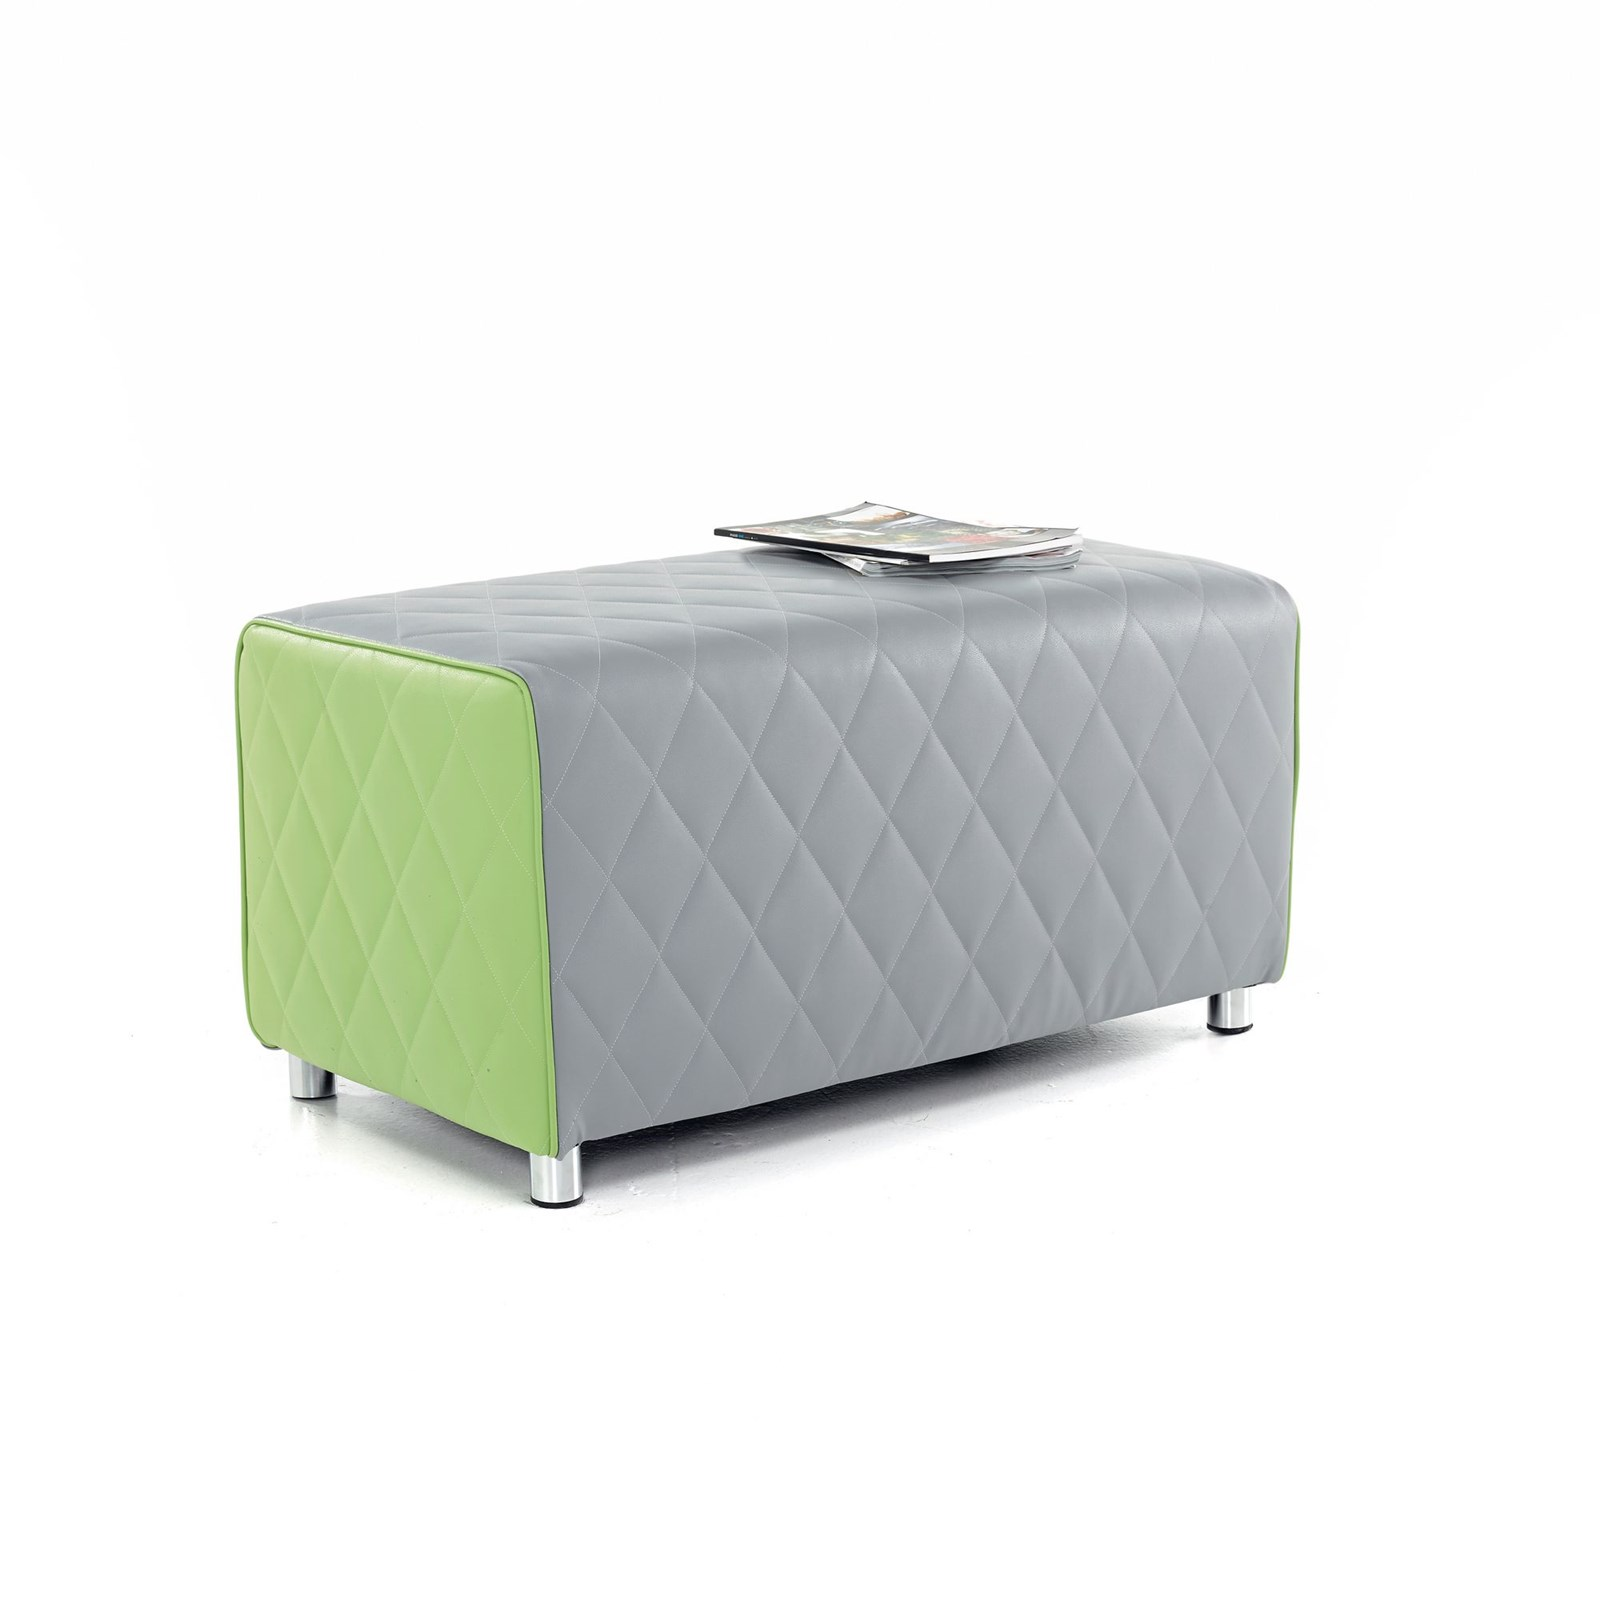 Rectangular Breakout Seat 2 Person - Grey and Purple